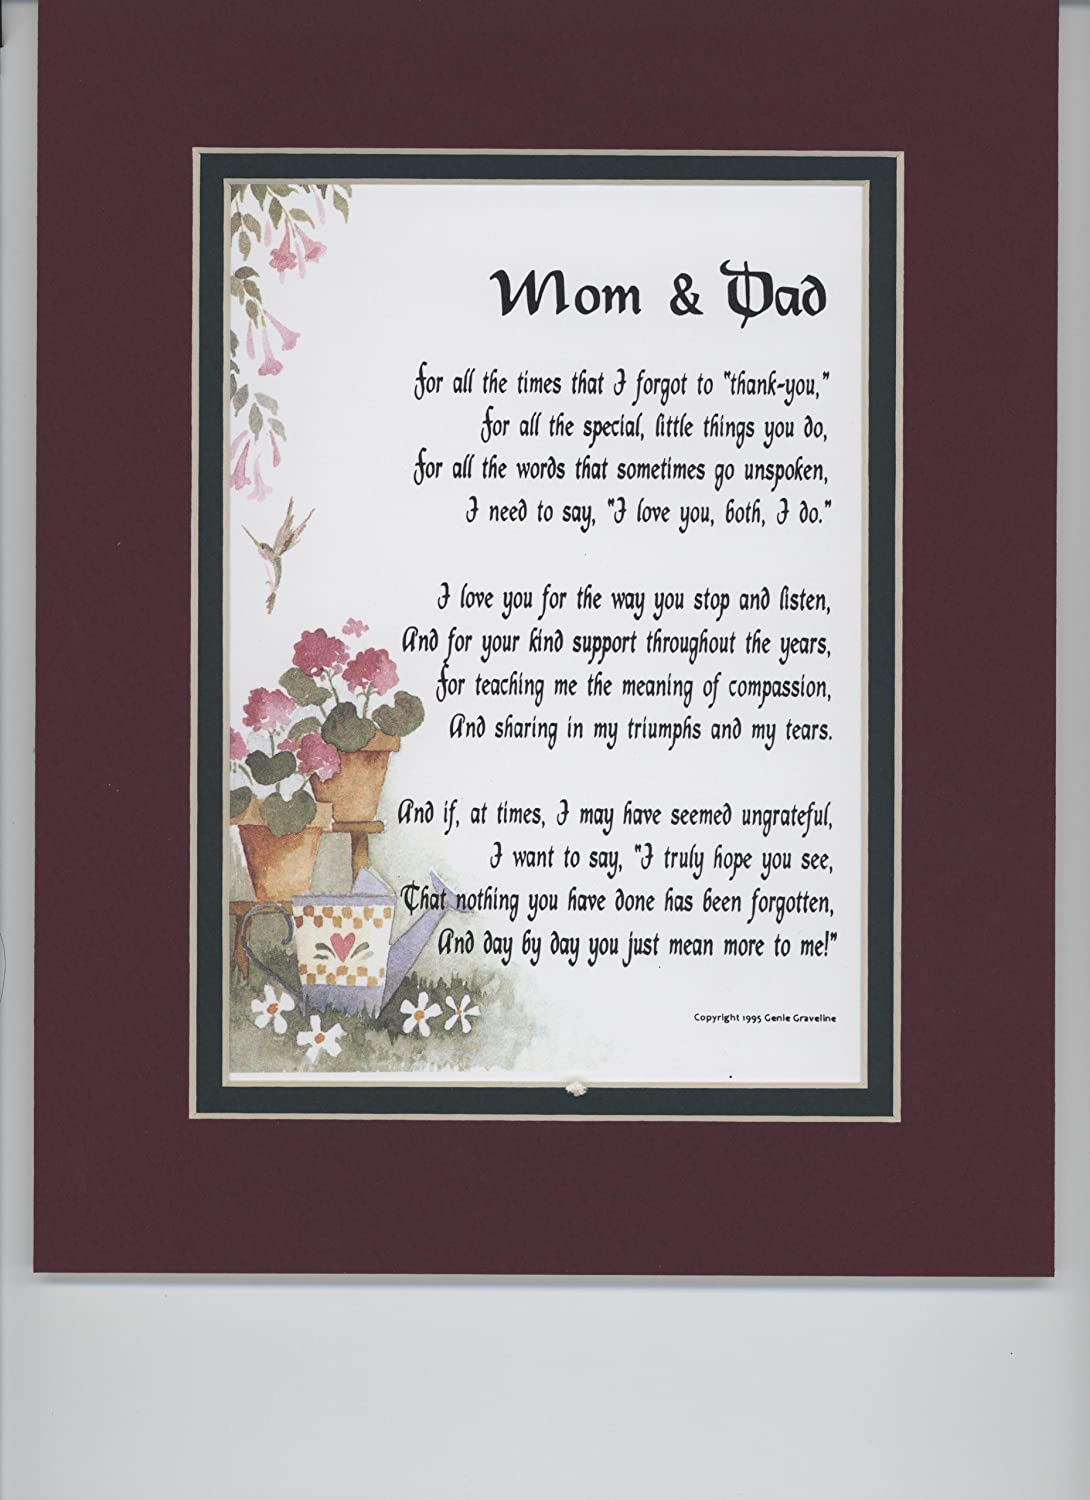 Special 30th Wedding Anniversary Gifts For Mom And Dad